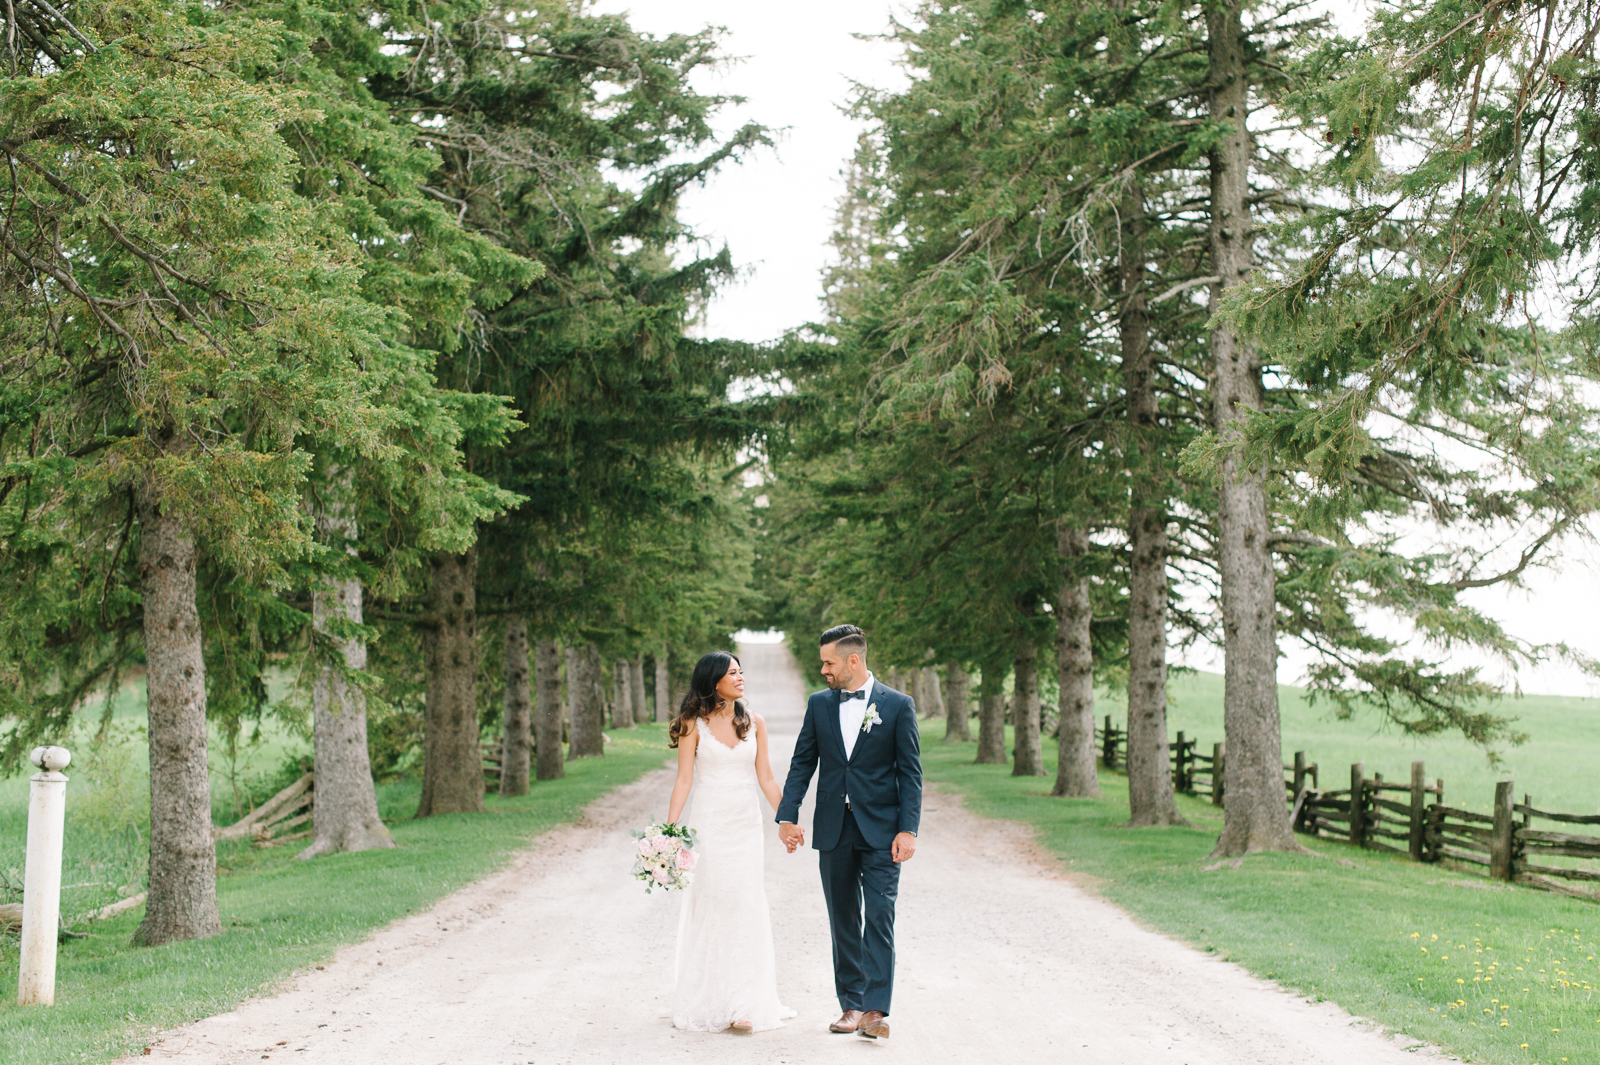 tara-mcmullen-photography-toronto-wedding-photography-alderlea-mansion-wedding-alderlea-wedding-brampton-scotsdale-farm-wedding-reem-acra-wedding-016